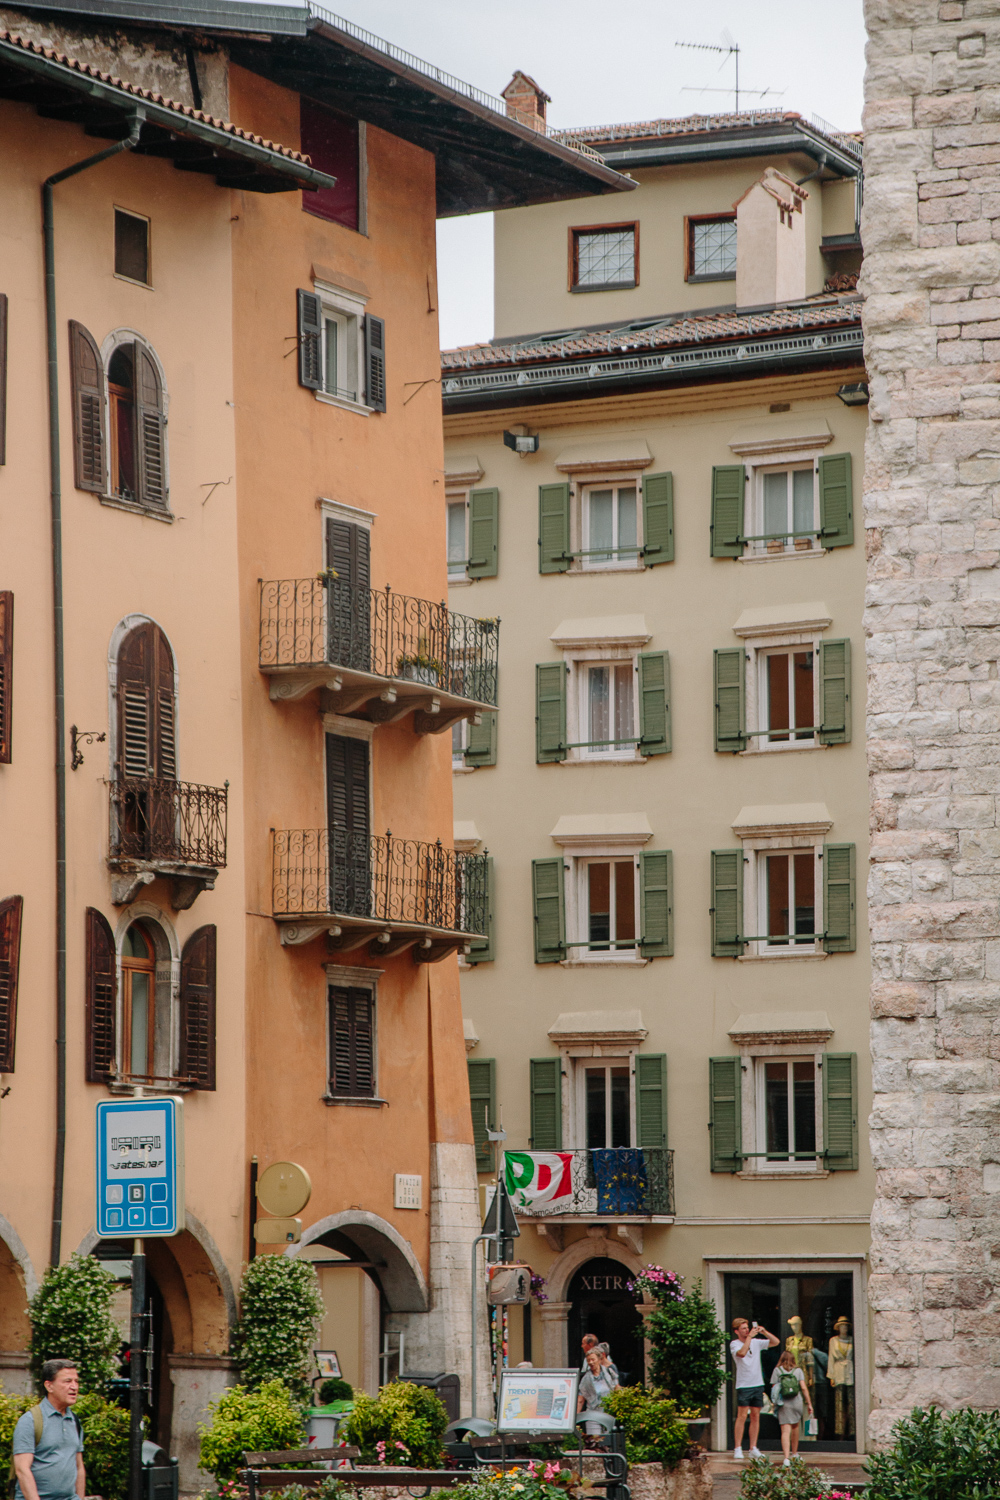 Colourful Buildings Lining Piazza Duomo in Trento